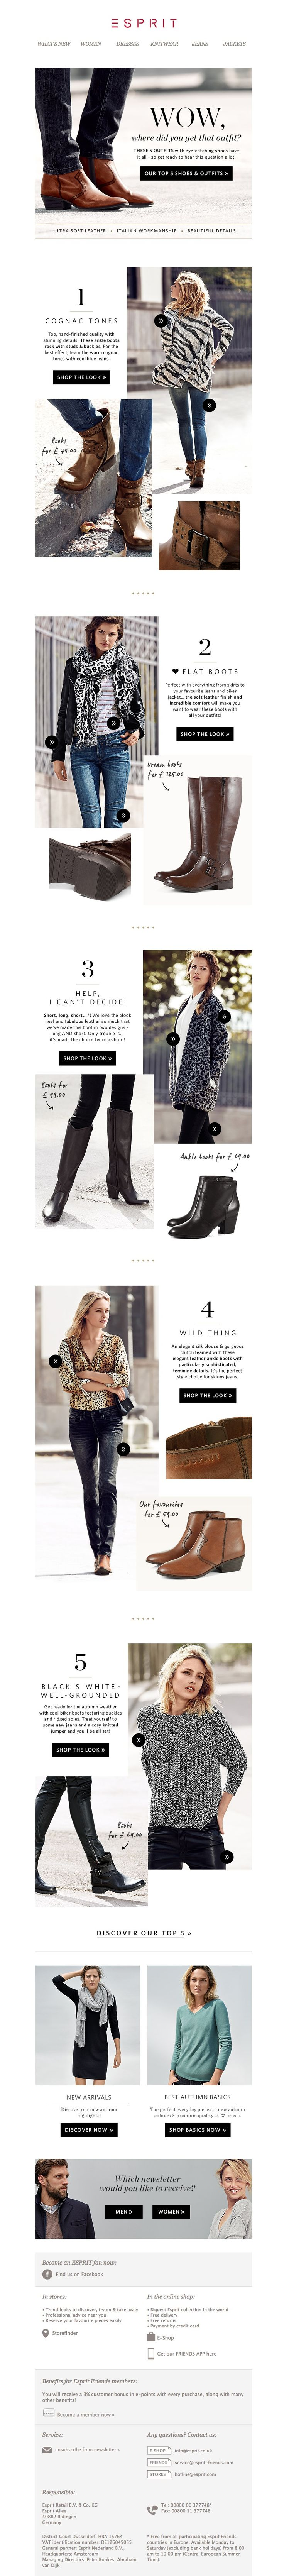 #newsletter Esprit 10.2014 Top 5 shoes & looks - top quality, top workmanship, top designs…